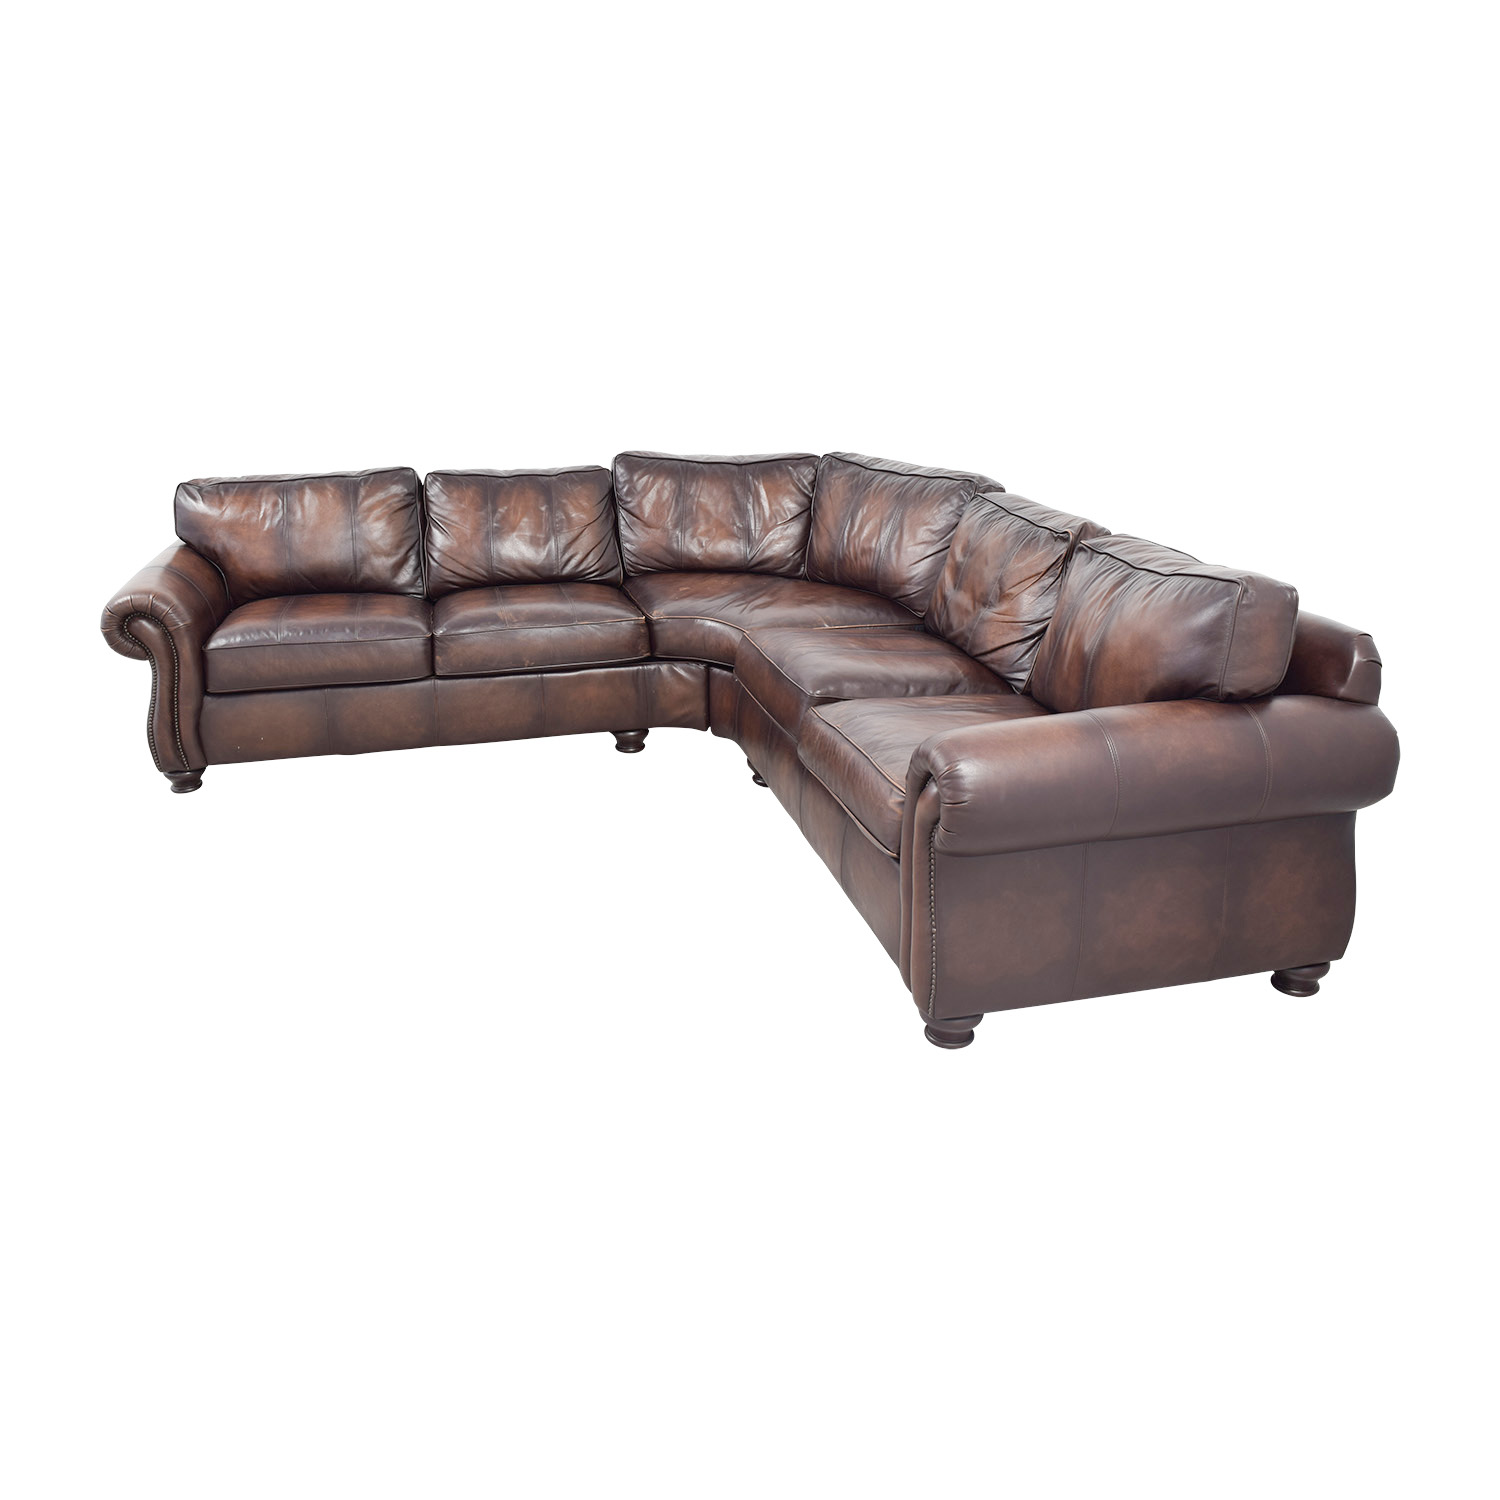 Raymour & Flanigan Raymour & Flanigan Brown Leather Sectional on sale